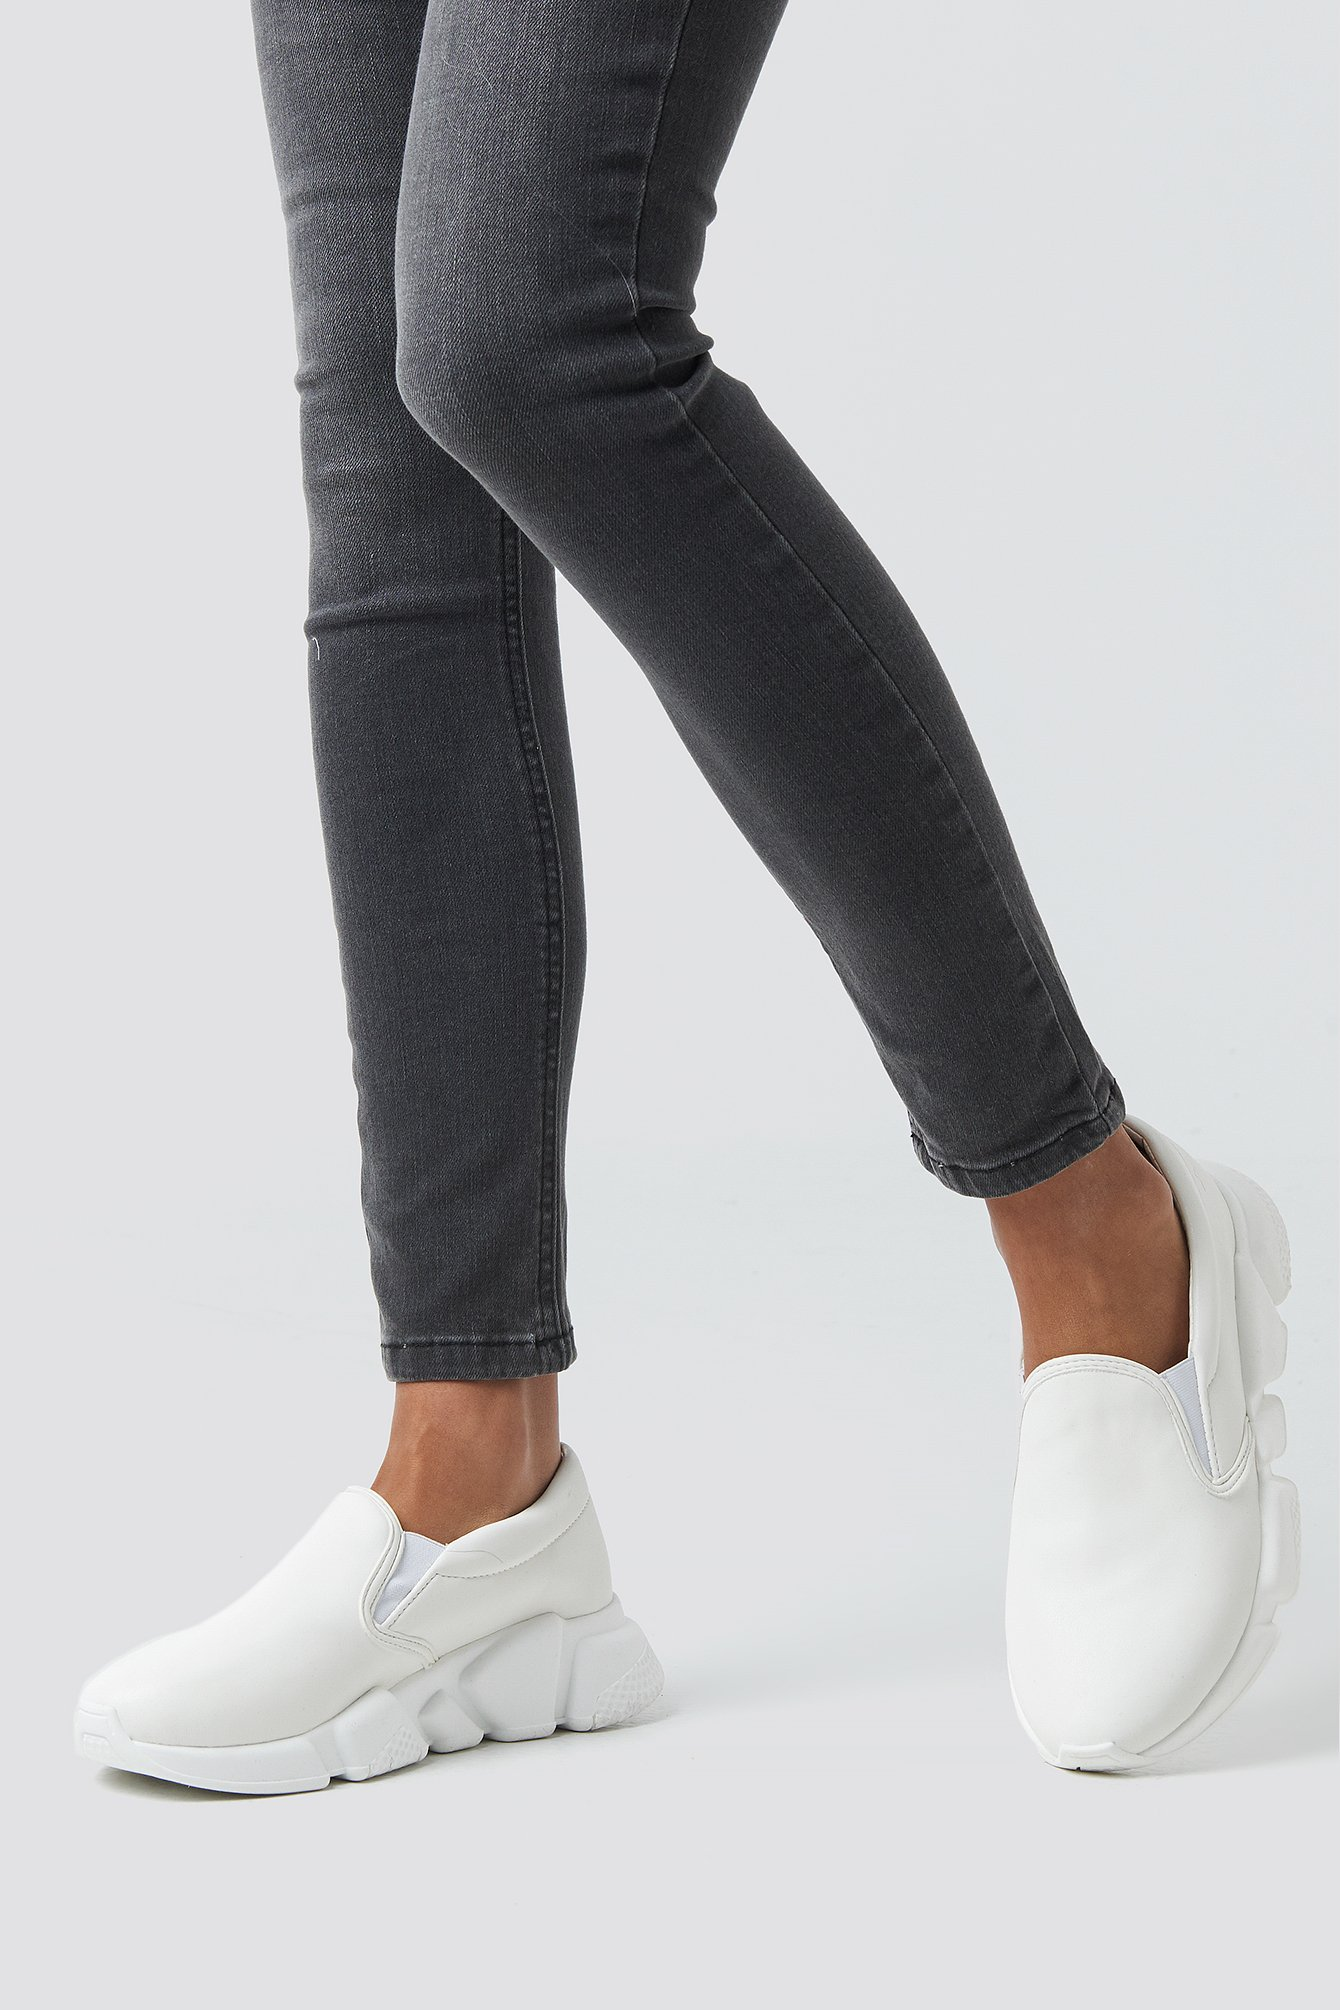 NA-KD Shoes Chunky Slip In Sneakers - White